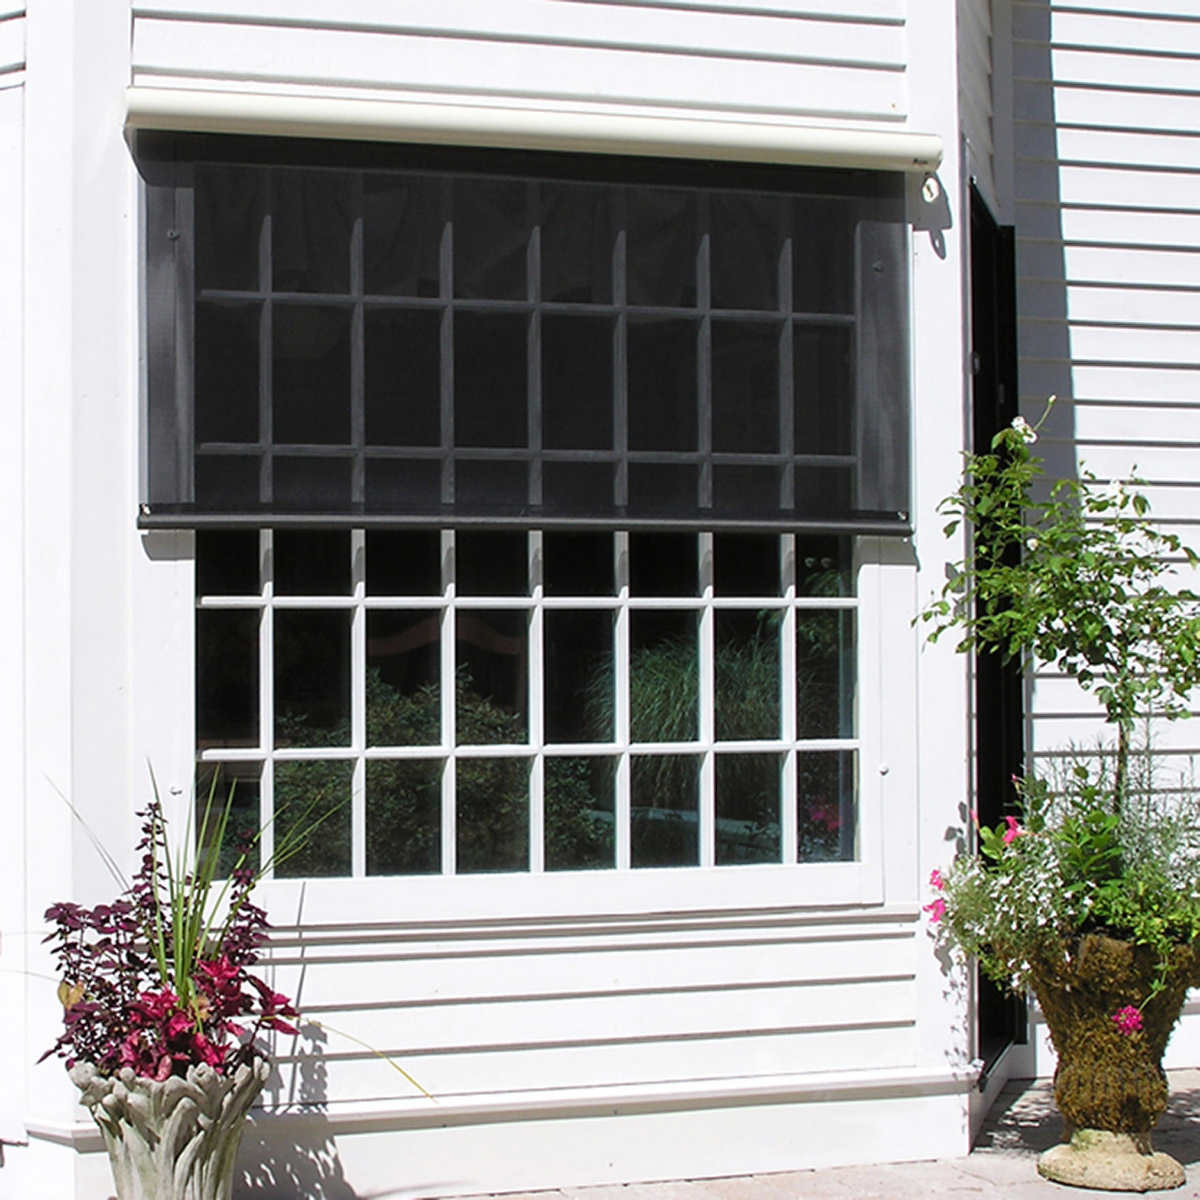 Exterior sun shades for windows - Click To Zoom